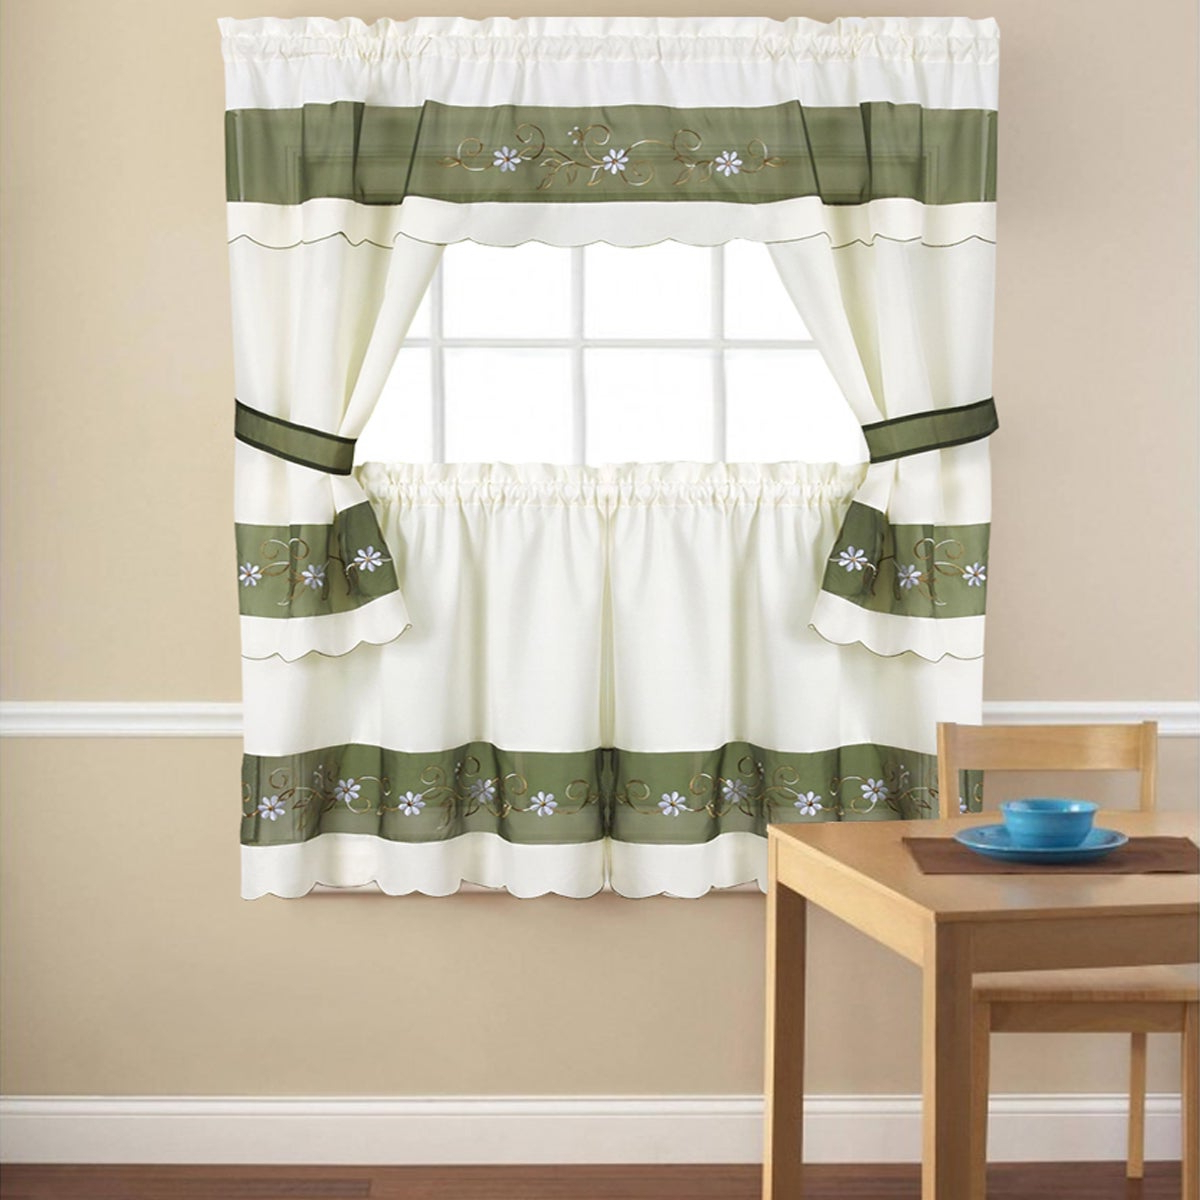 Recent Embroidered Floral 5 Piece Kitchen Curtain Set With Urban Embroidered Tier And Valance Kitchen Curtain Tier Sets (View 15 of 20)